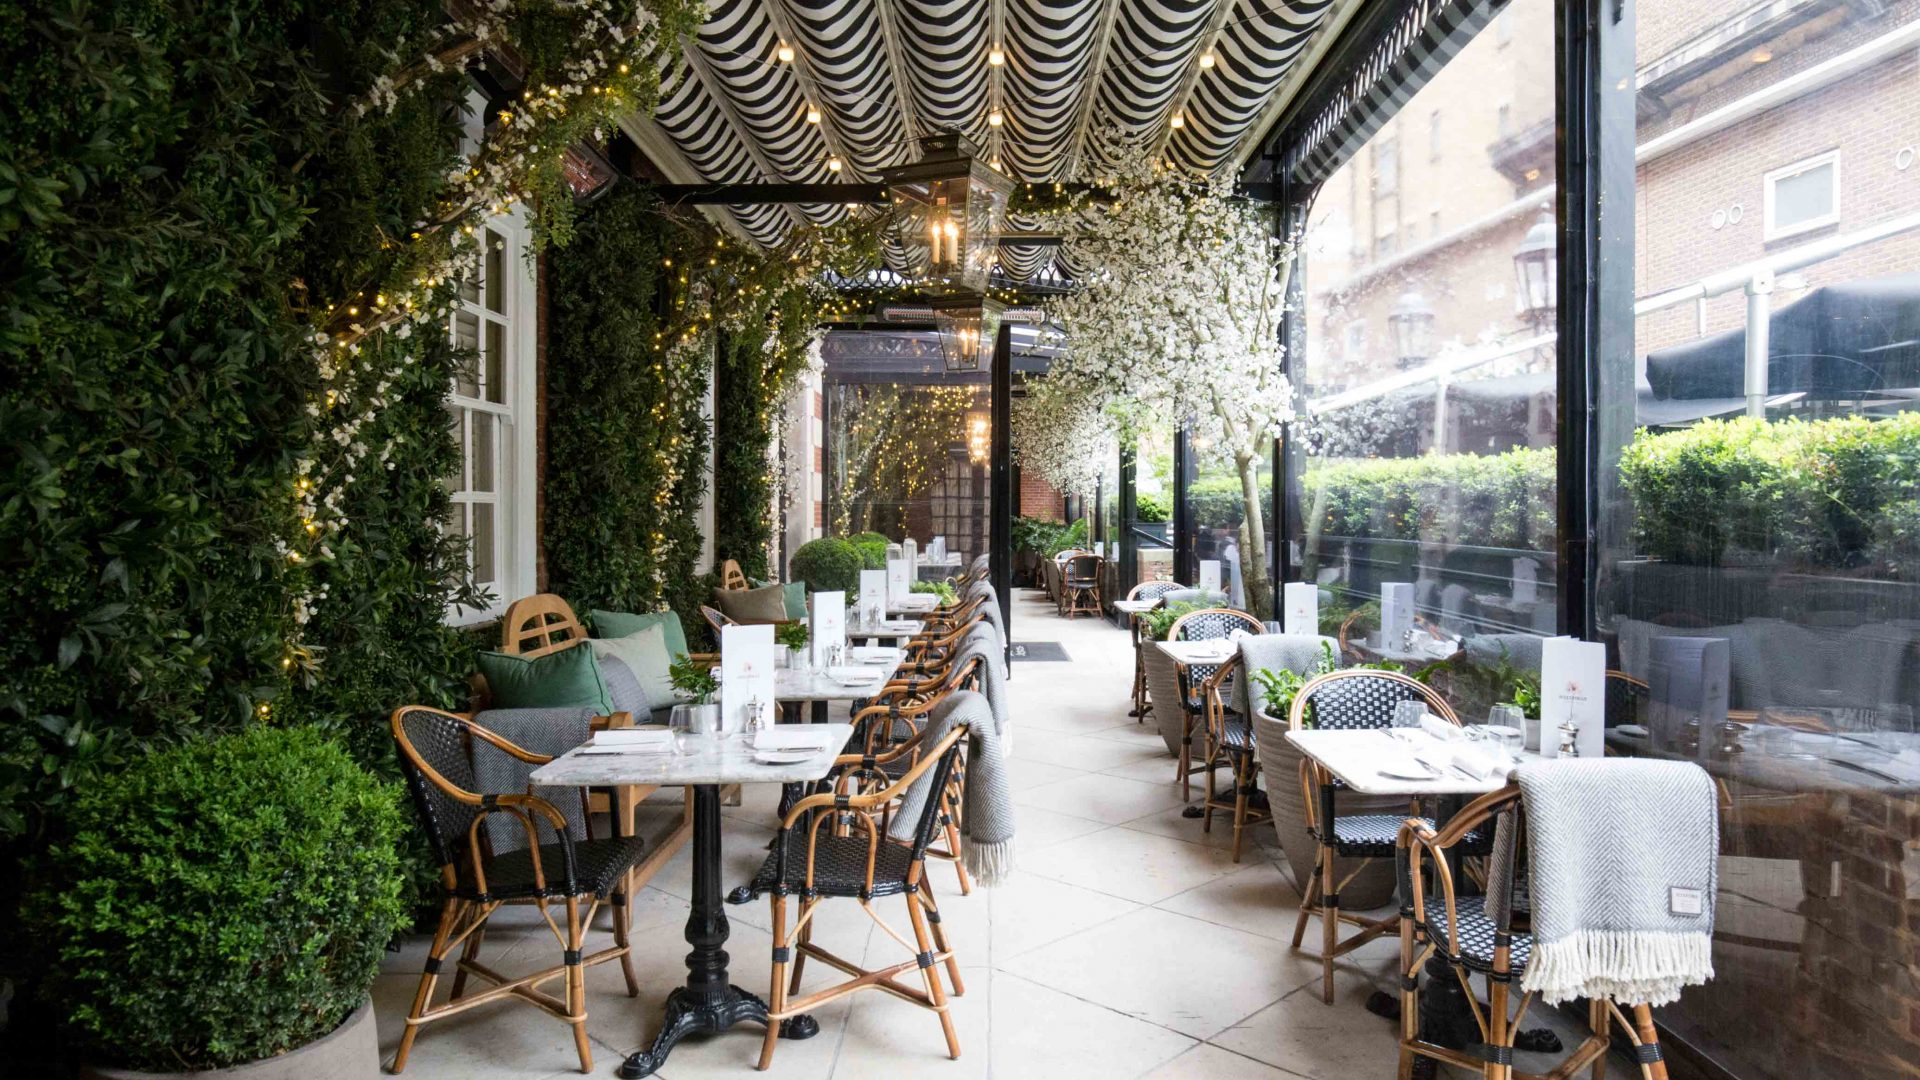 Dalloway terrace bar is an elegant poetic and for Terrace restaurant menu